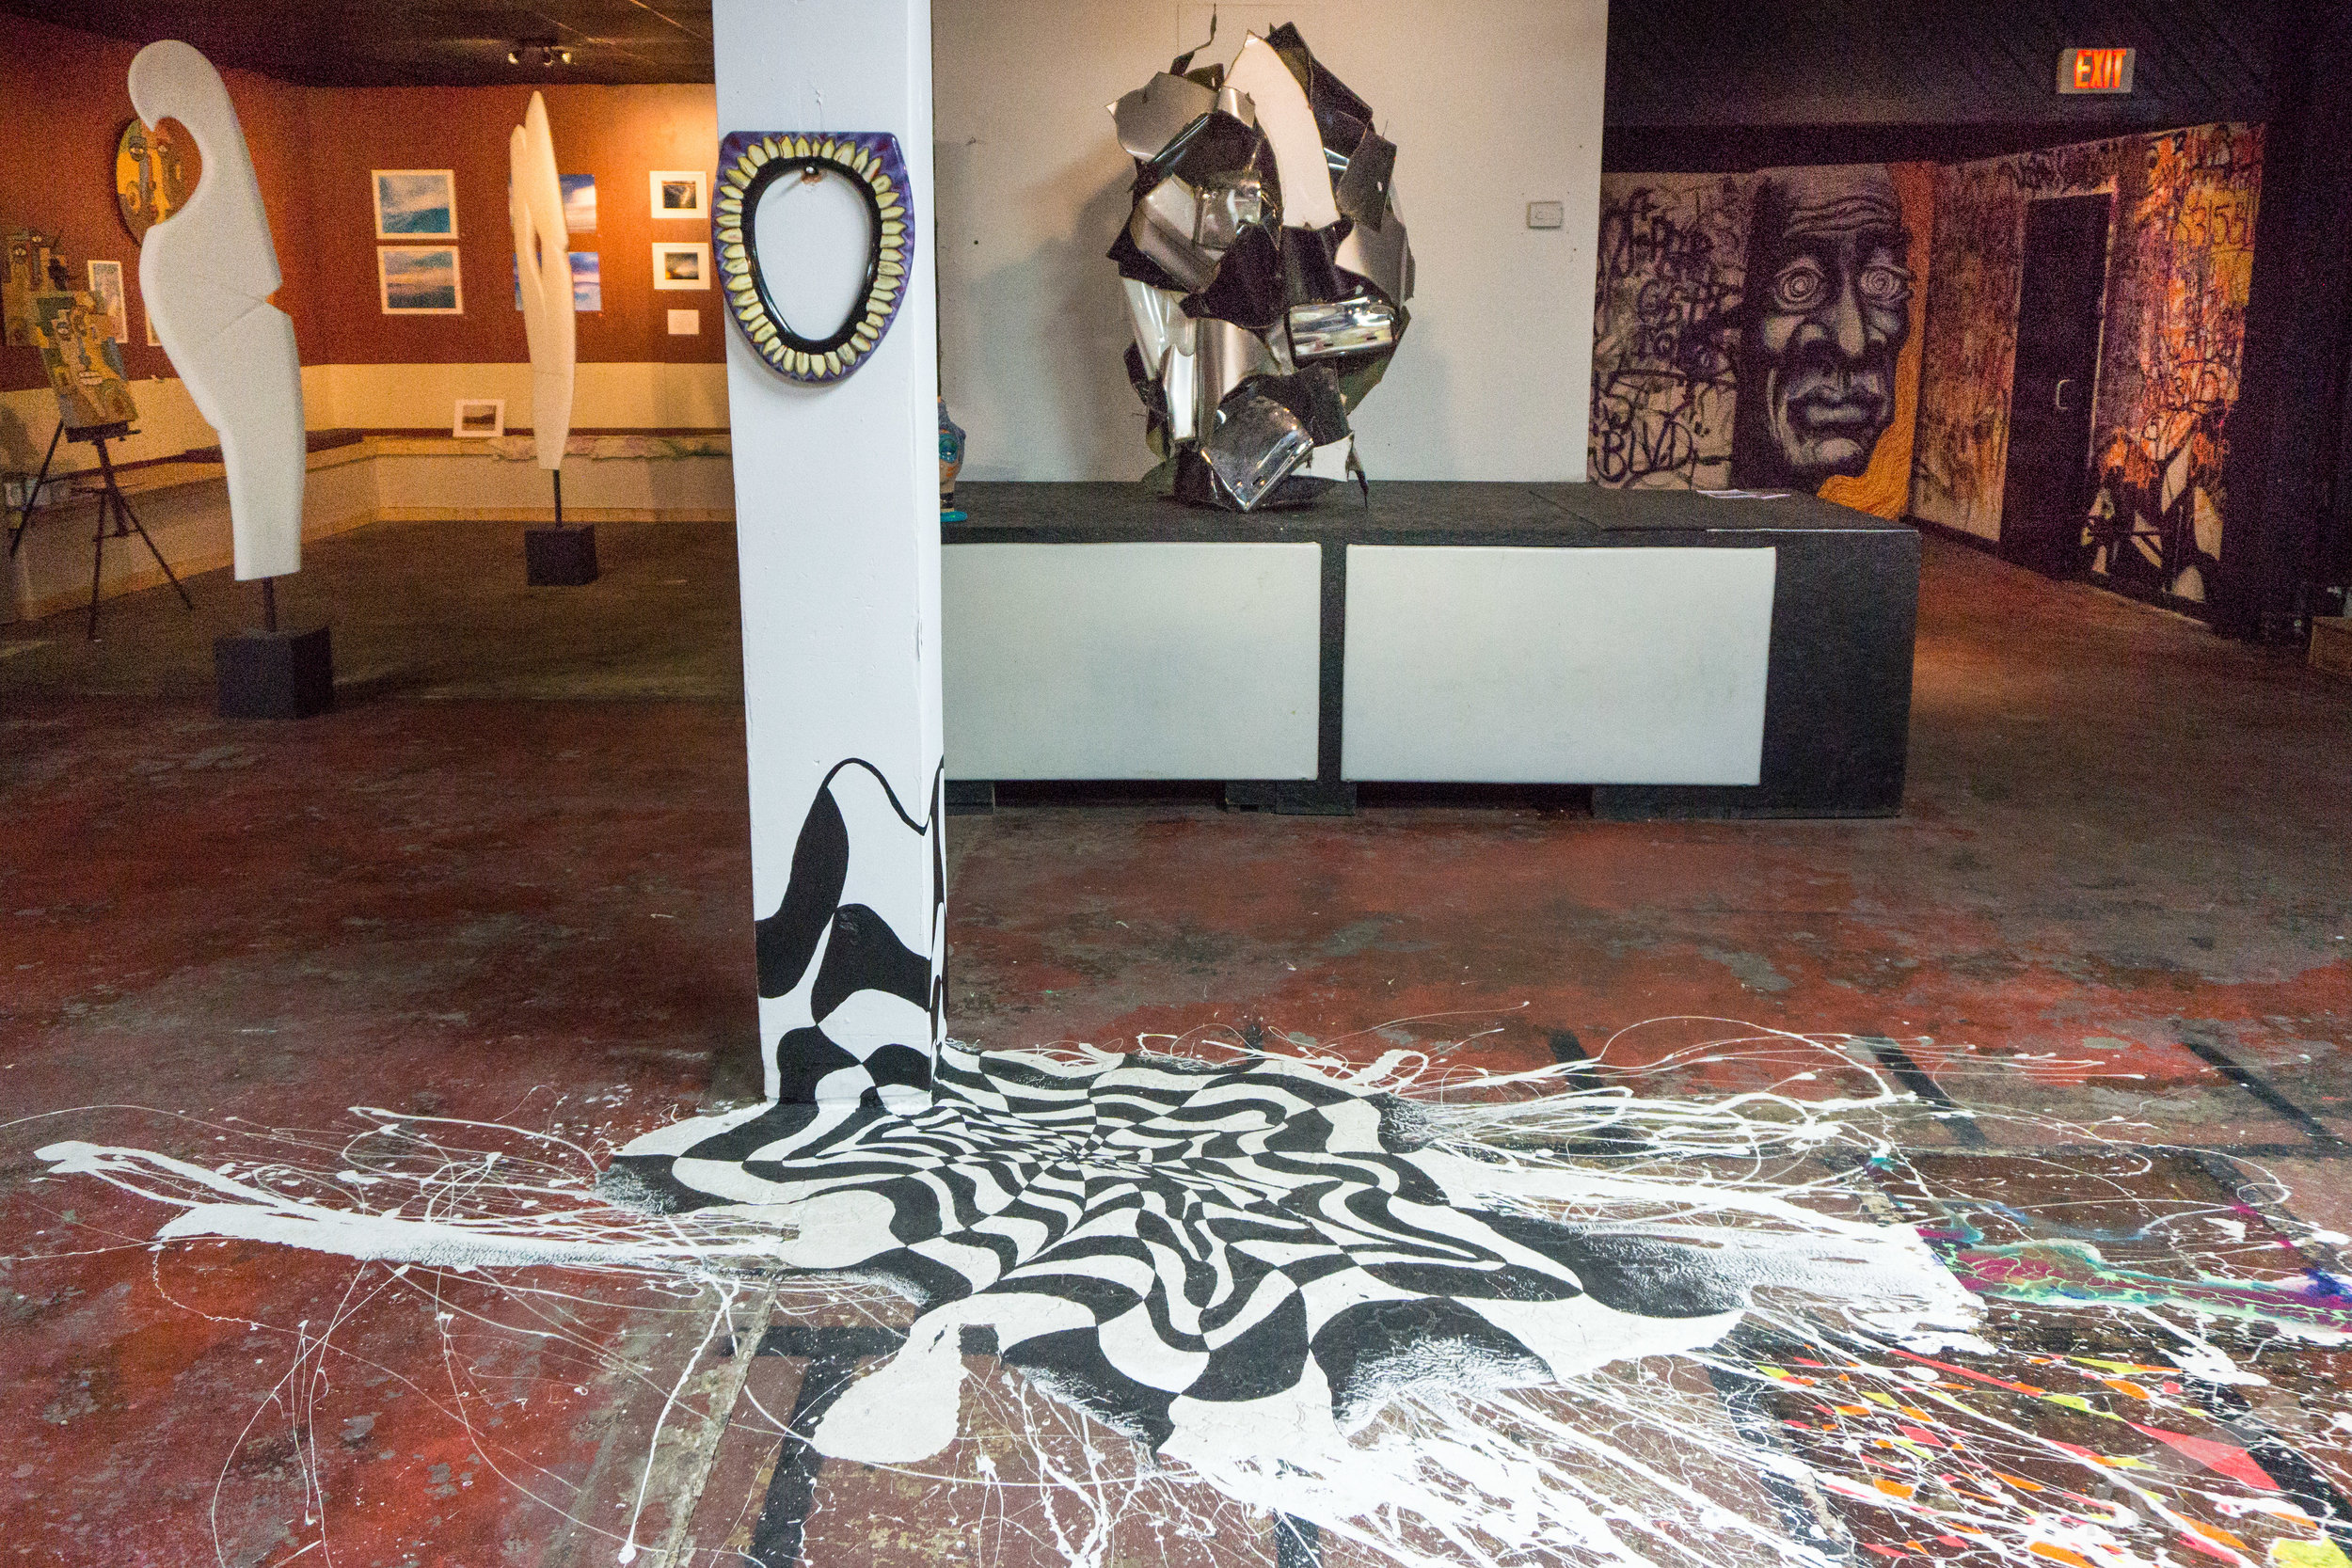 Trippy floors installations, potty mouths, abstract sculptures, larger-than-life-size faces, graffiti tags, water photography, and cubism figures inside 3!5.